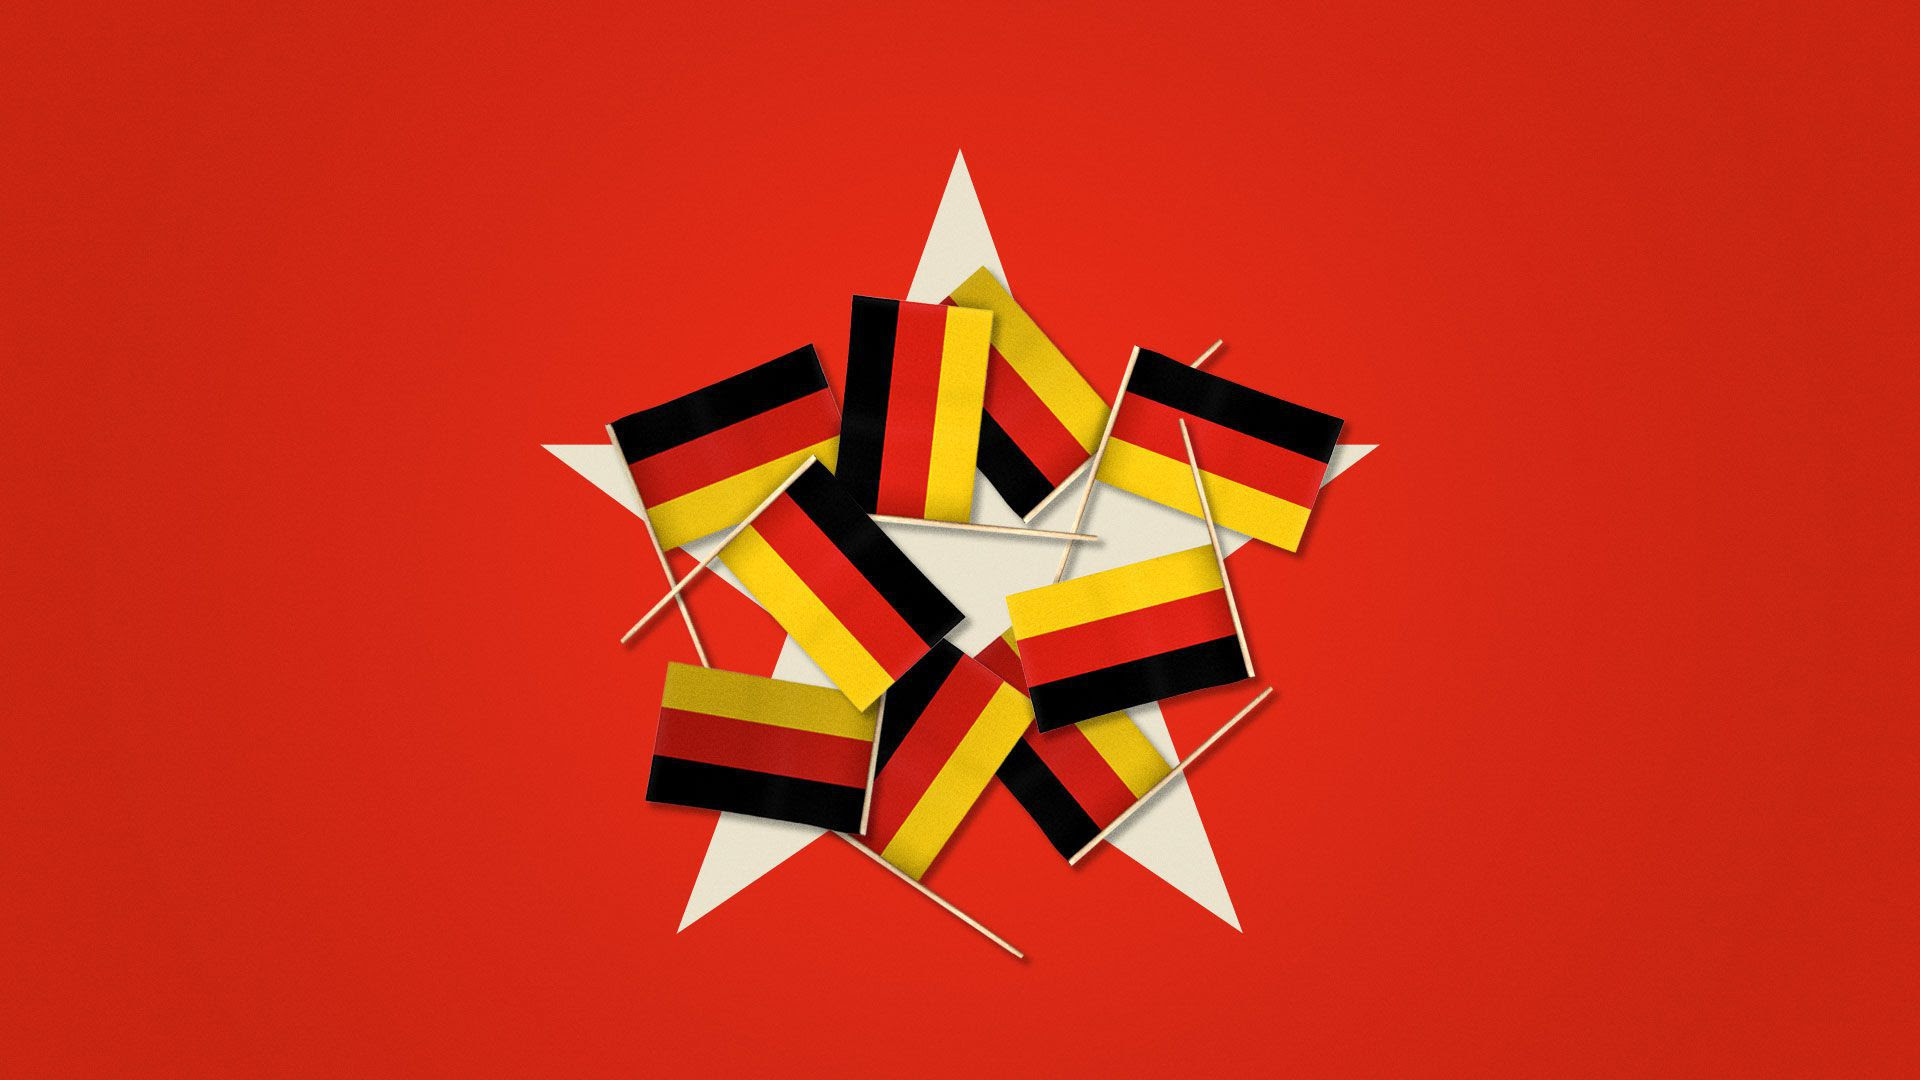 Illustration of German flags covering a large star